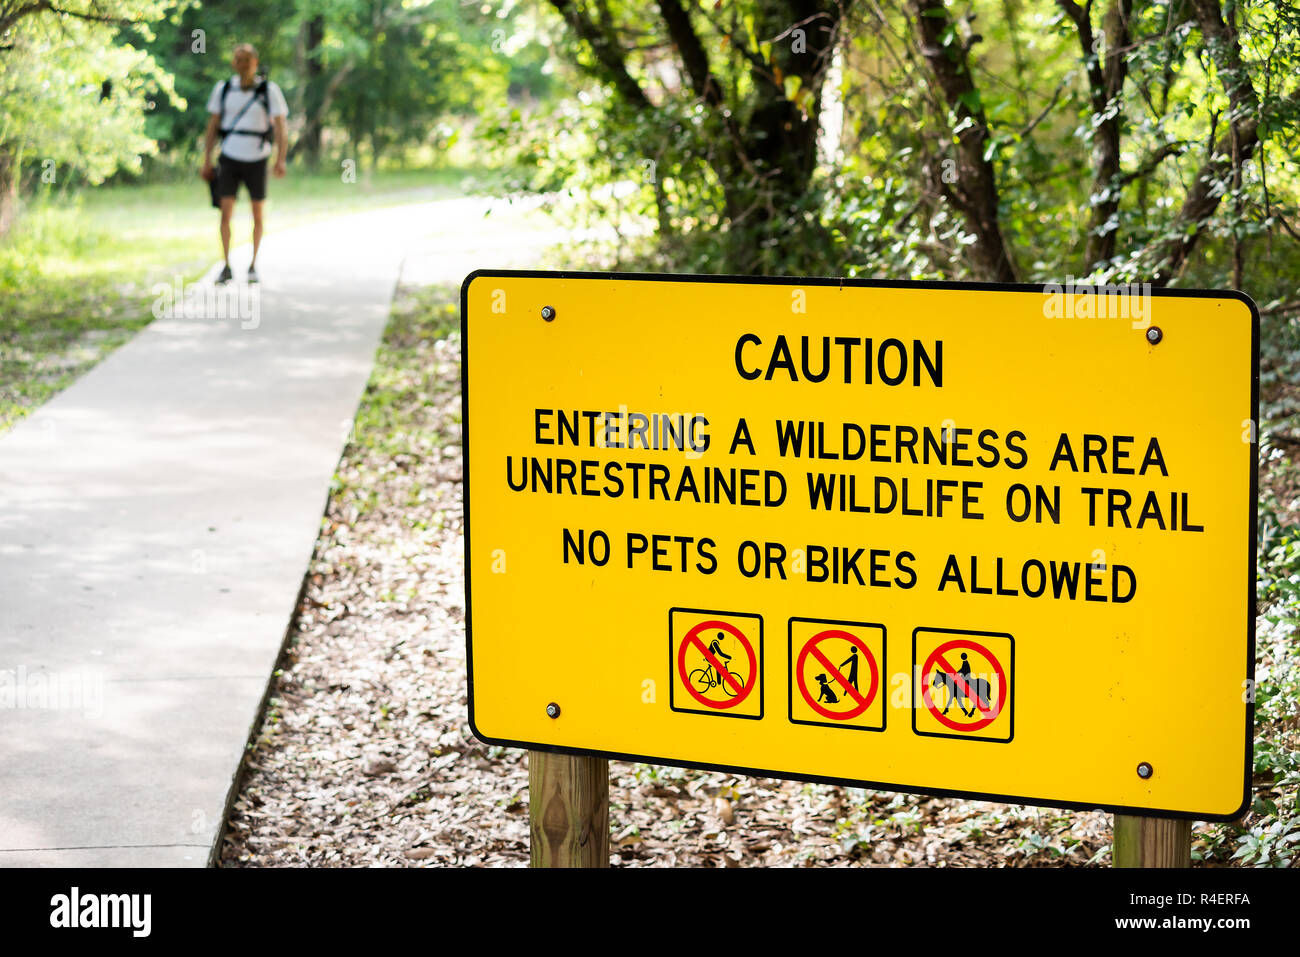 Gainesville, USA - April 27, 2018: Paynes Prairie Preserve State Park Watershed Wilderness area sign in Florida with information on trail hike, man ph - Stock Image